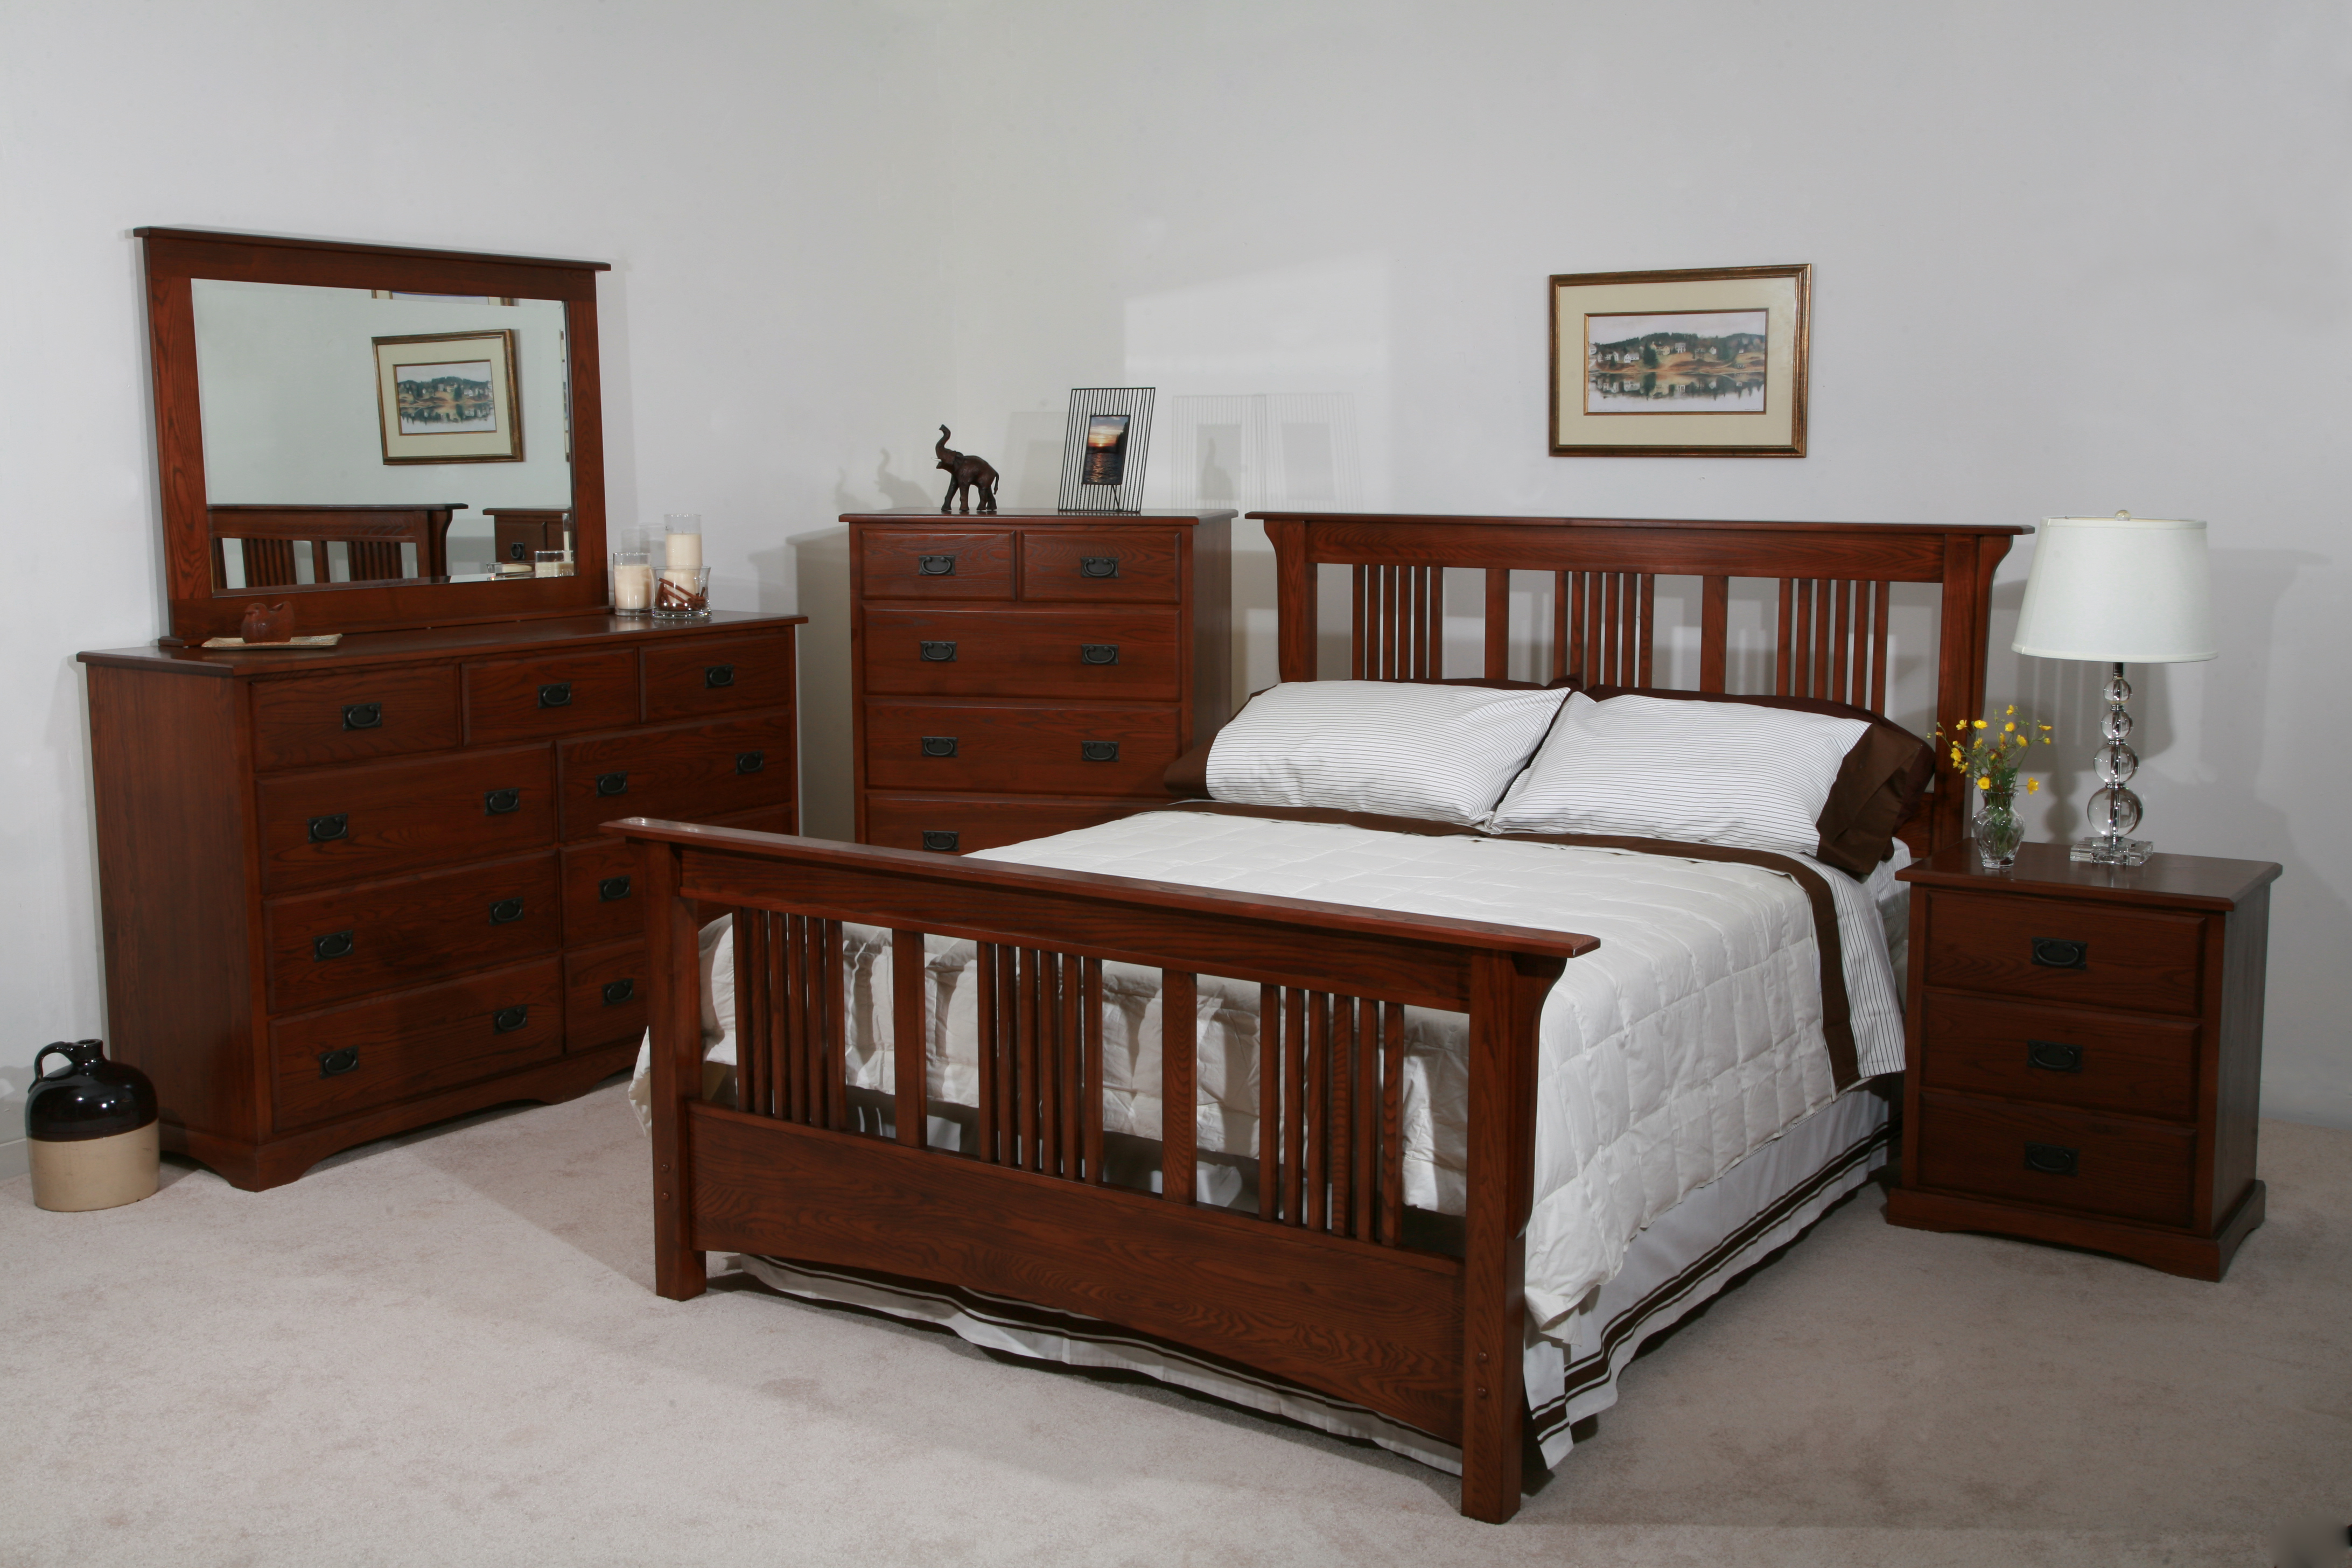 The Bedworks Of Maine Worleybeds New Bedford Ma